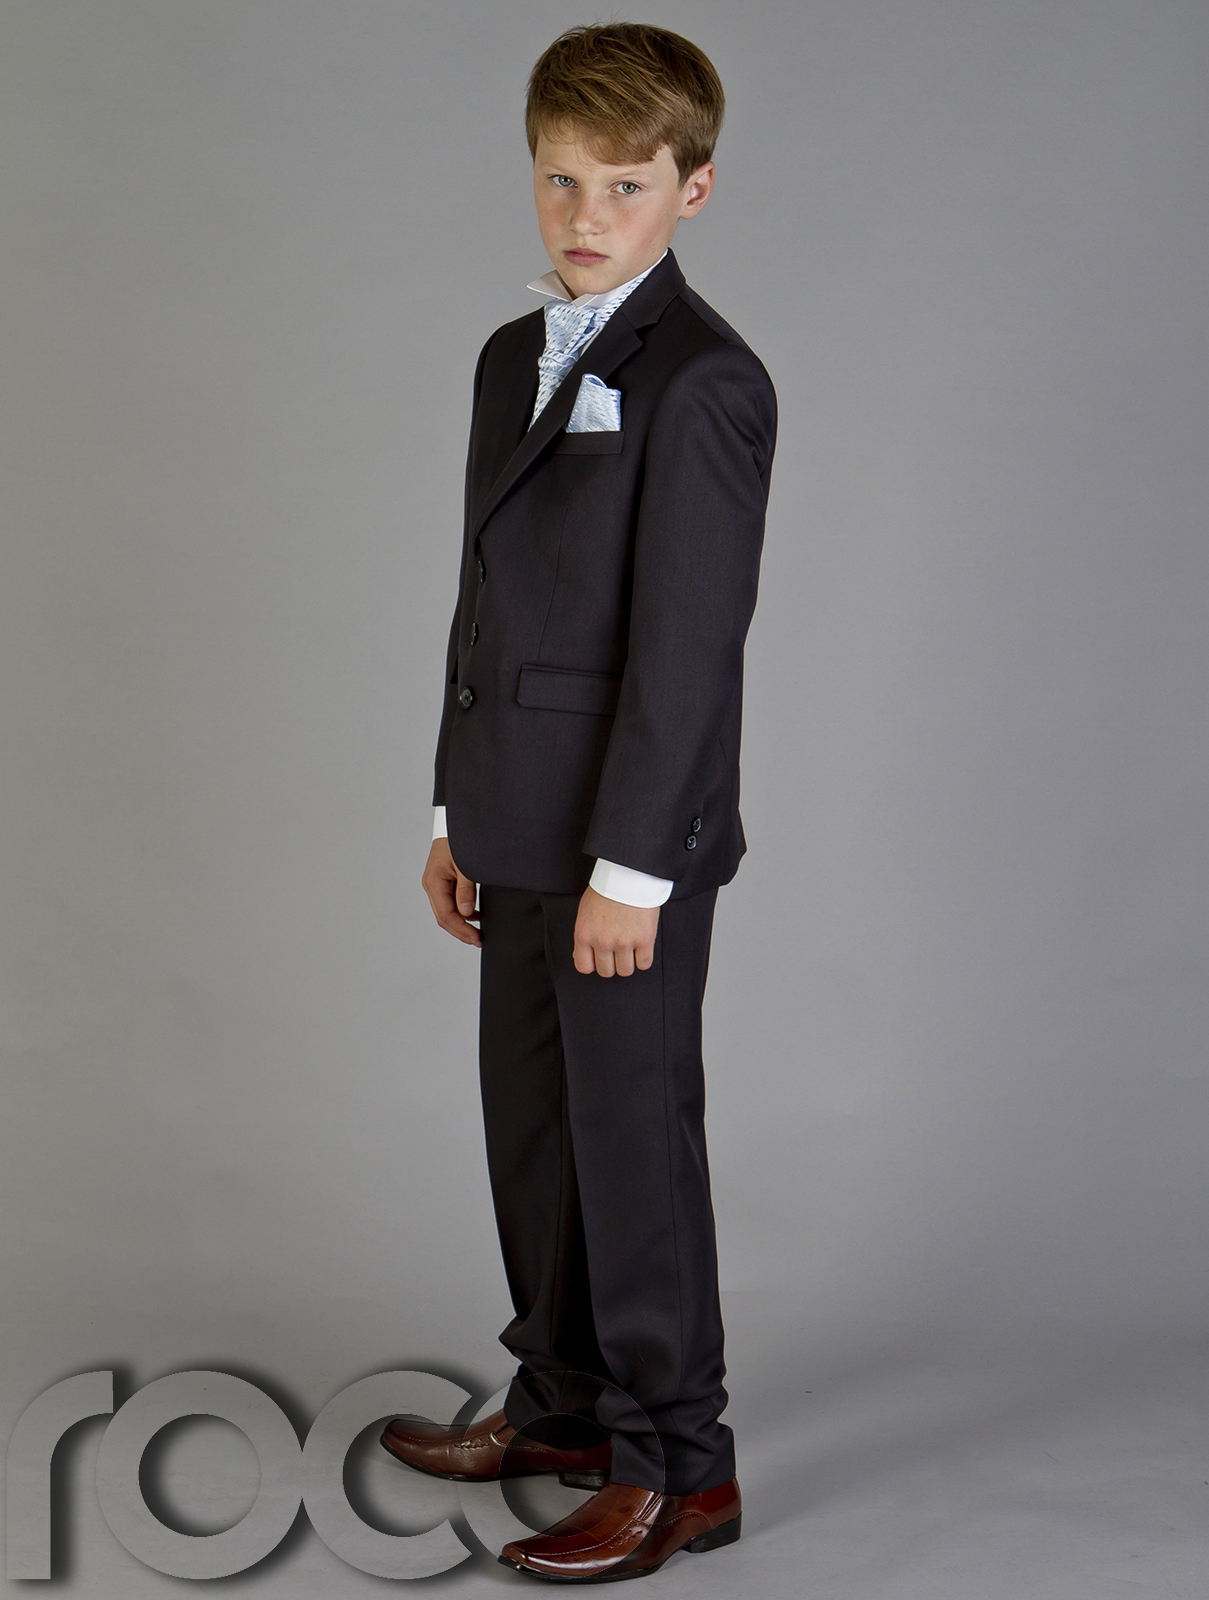 PAGEBOY OUTFITS FOR WEDDING NAVY BLUE SUIT AGE 6M-16 YRS ...